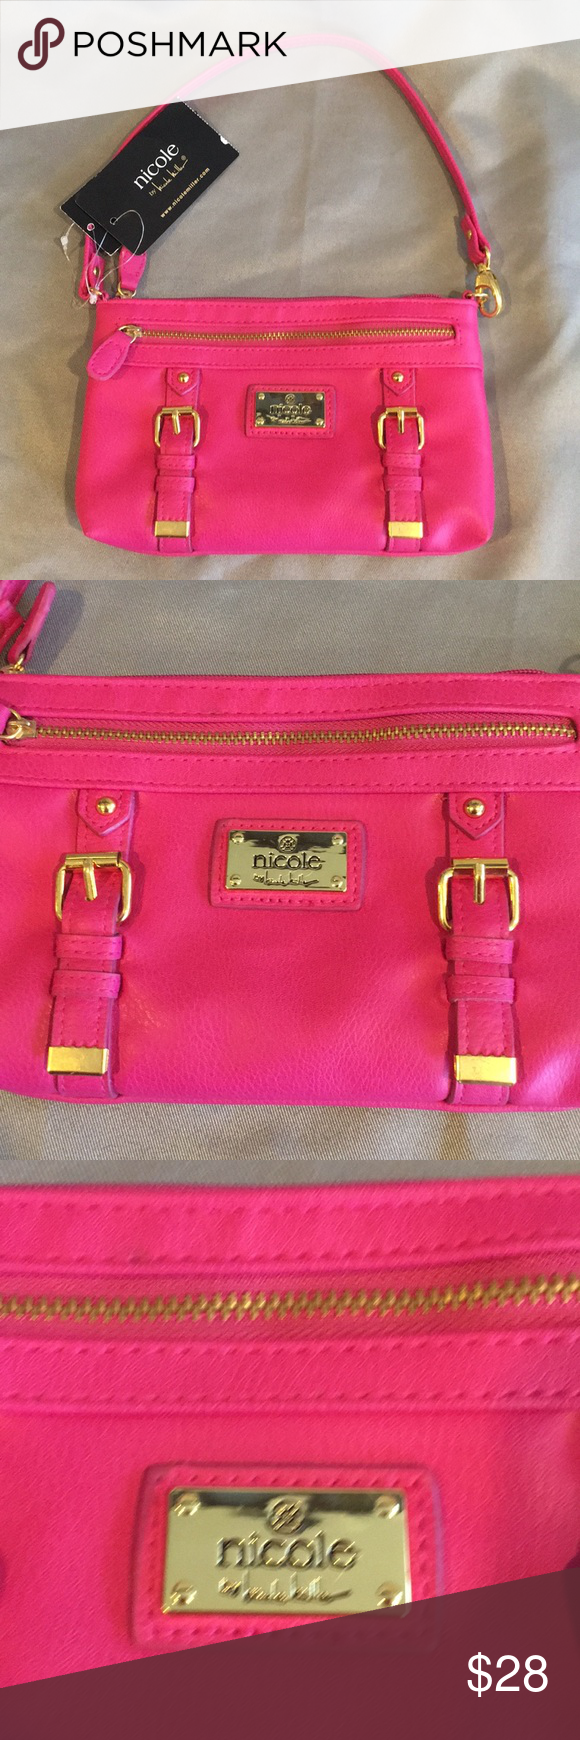 NWT Nicole Miller Pink & Gold Clutch Wristlet Gold